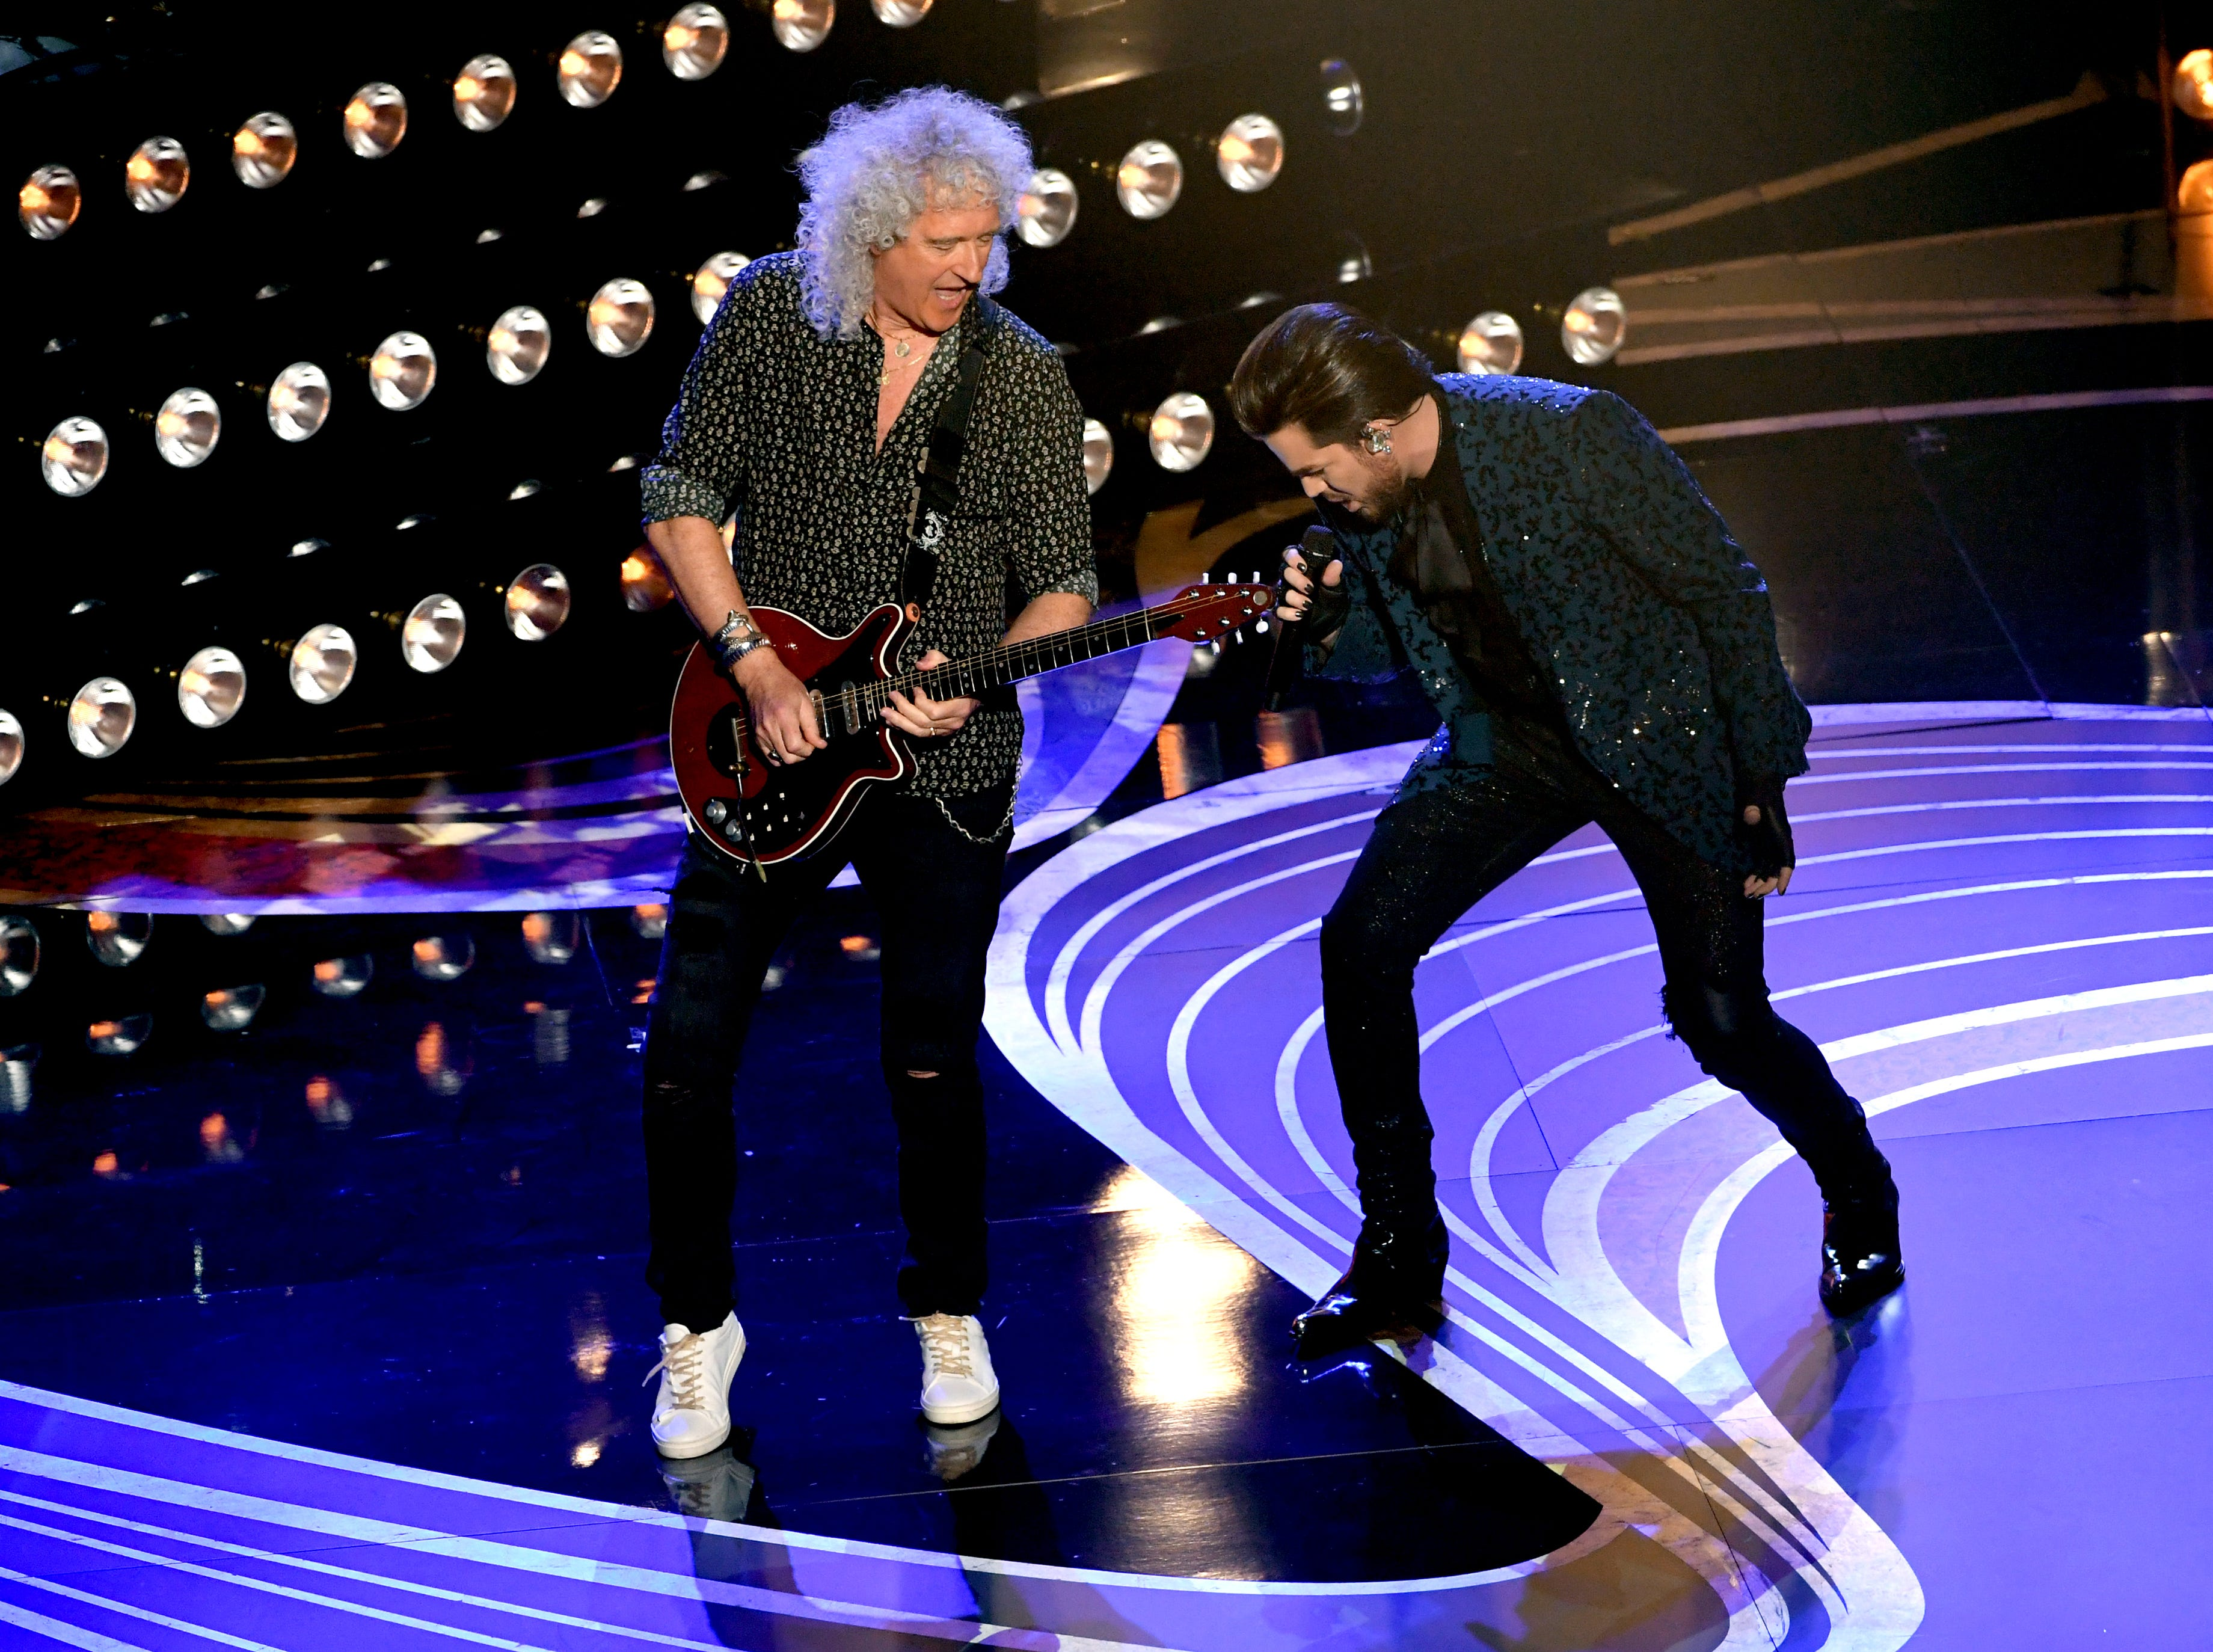 Adam Lambert and Brian May of Queen perform onstage during the 91st Annual Academy Awards.